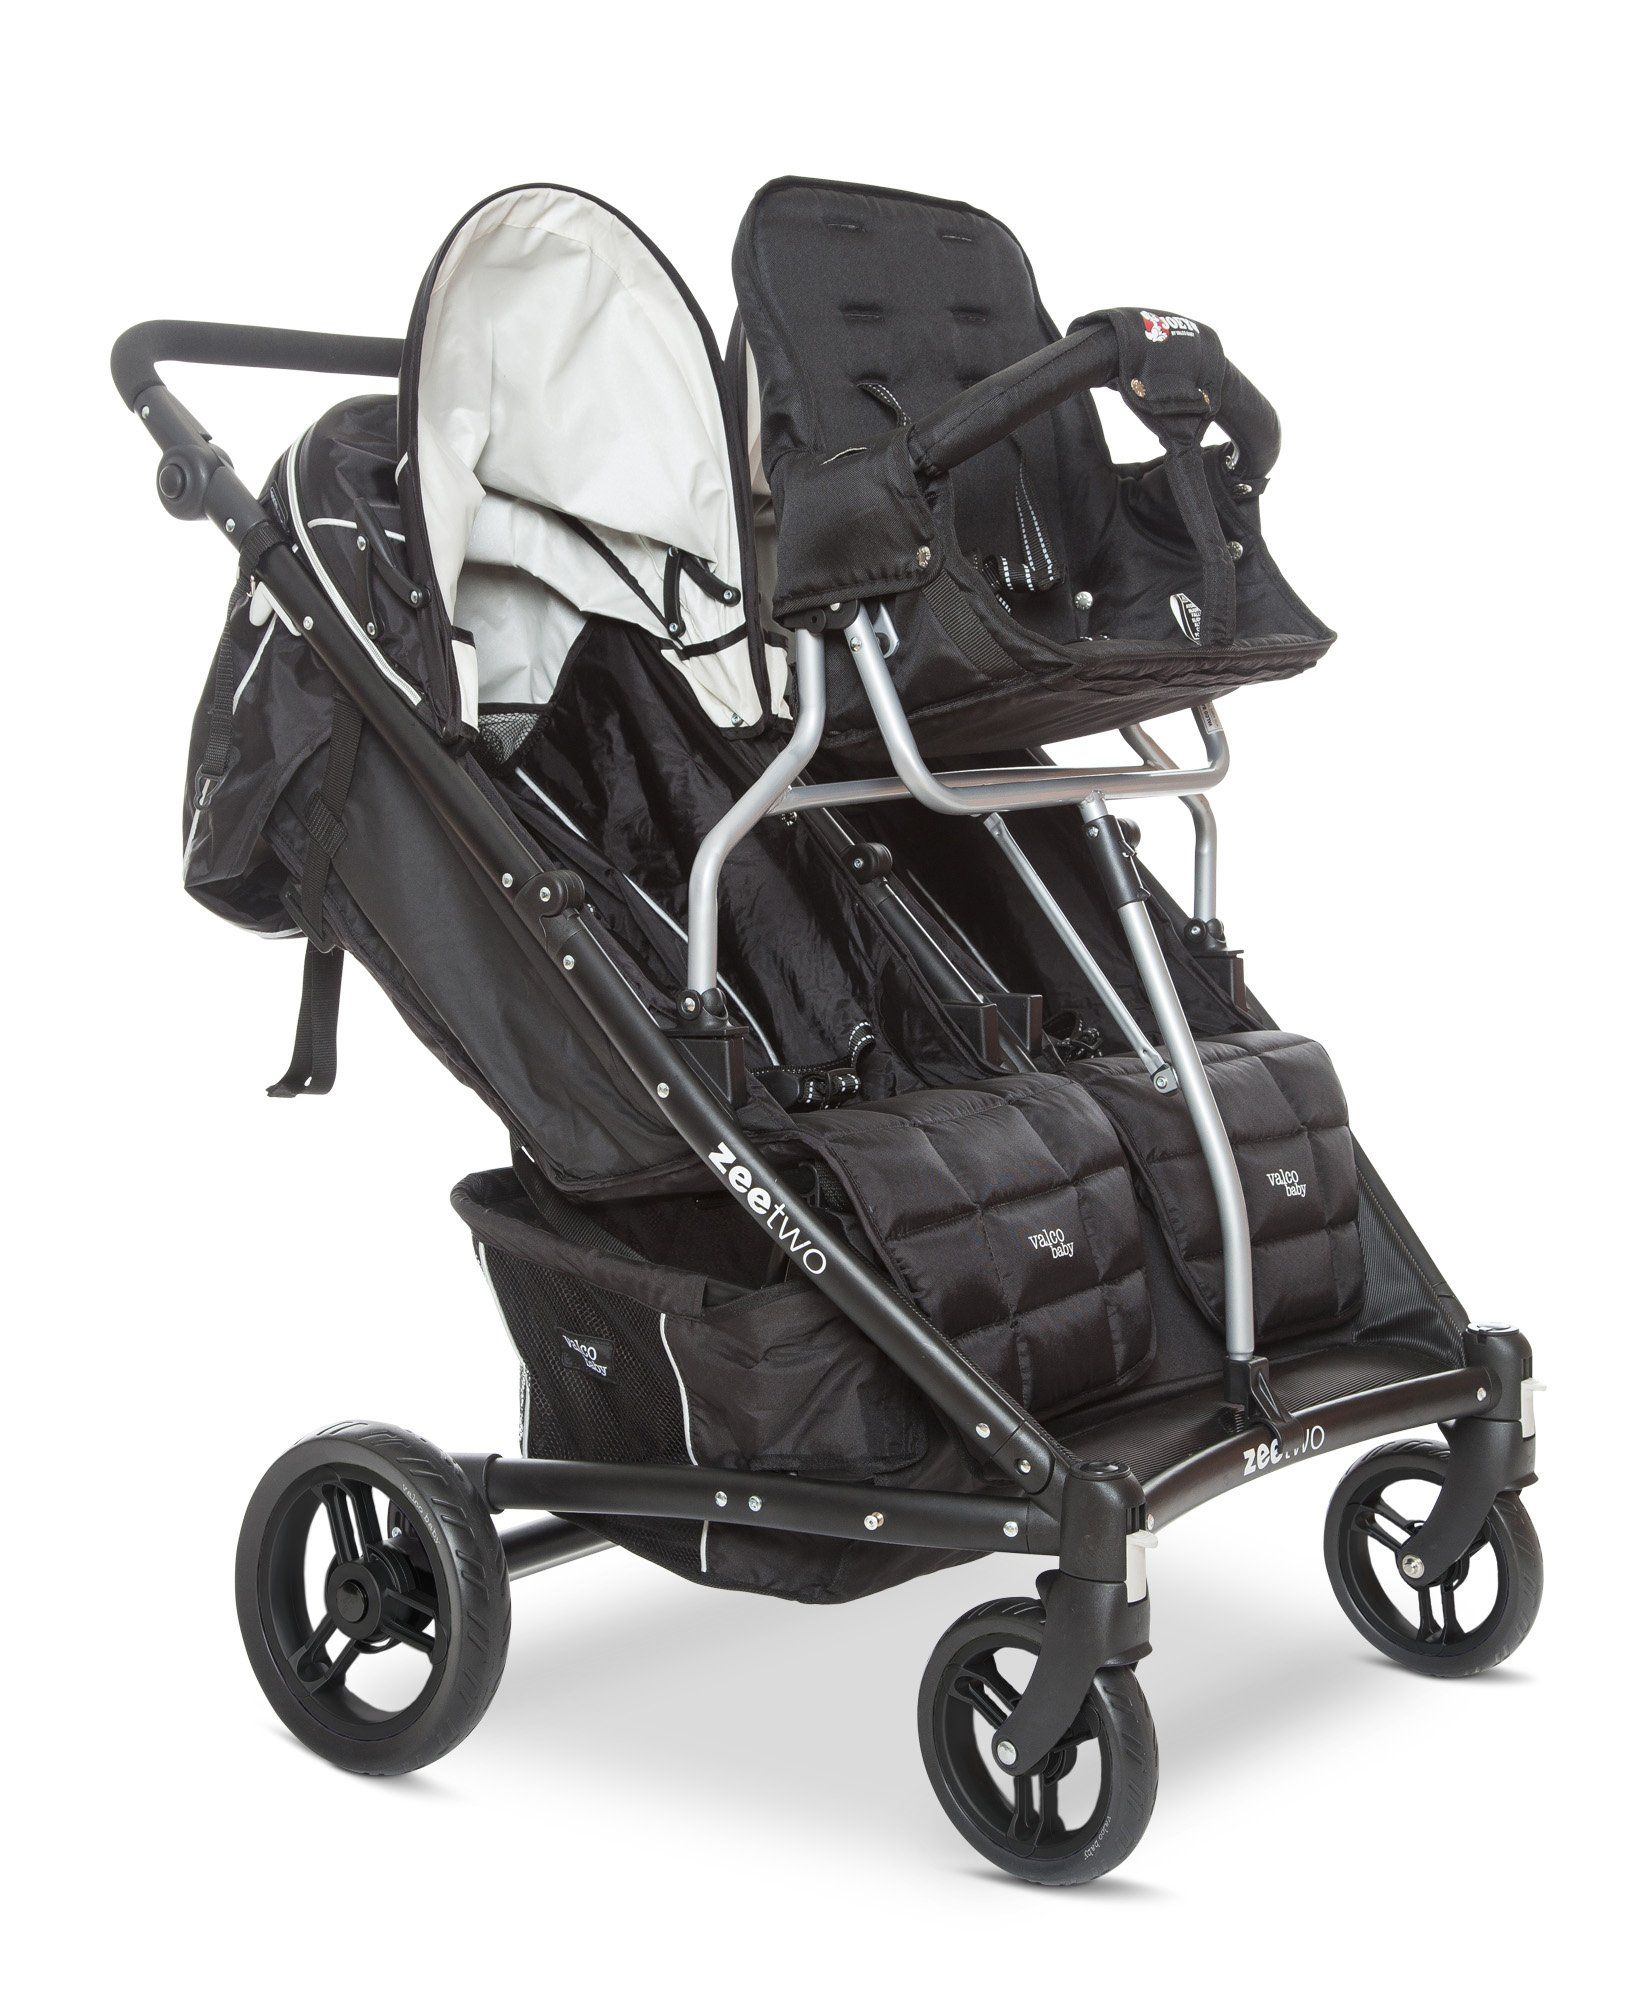 What Mom WANTS in a stroller... Light, Lush, Featurfeul